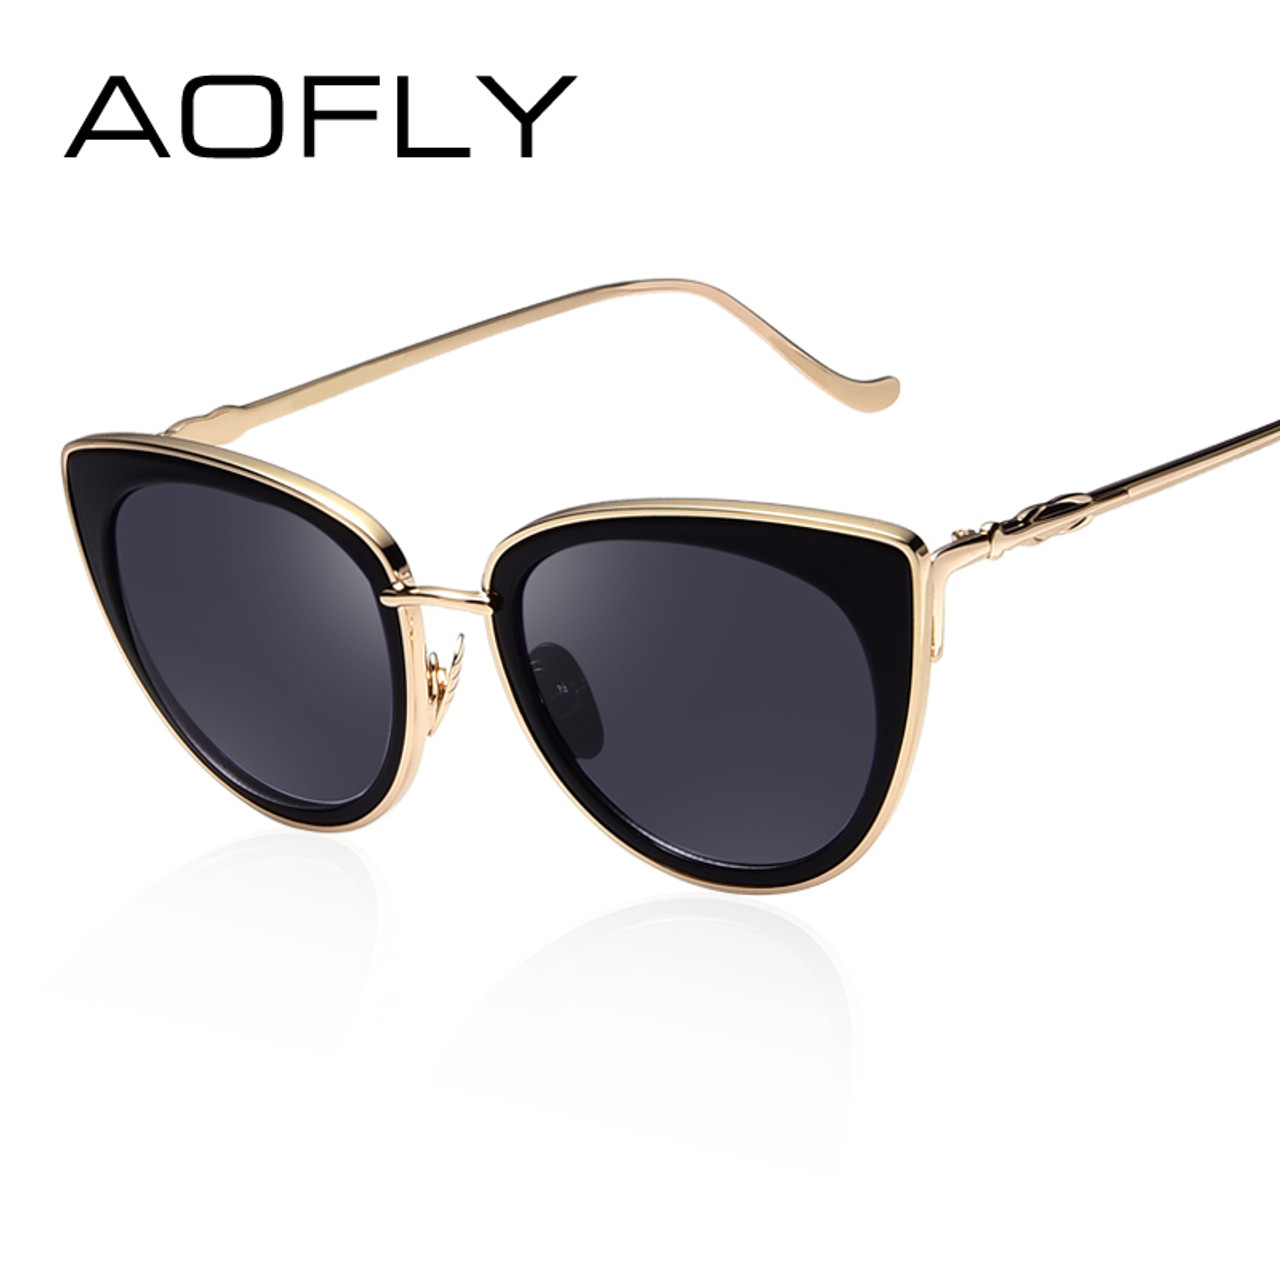 41b0141cf6 ... AOFLY Metal Frame Cat Eye Women Sunglasses Female Sunglasses Famous  Brand Designer Alloy Legs Glasses oculos ...